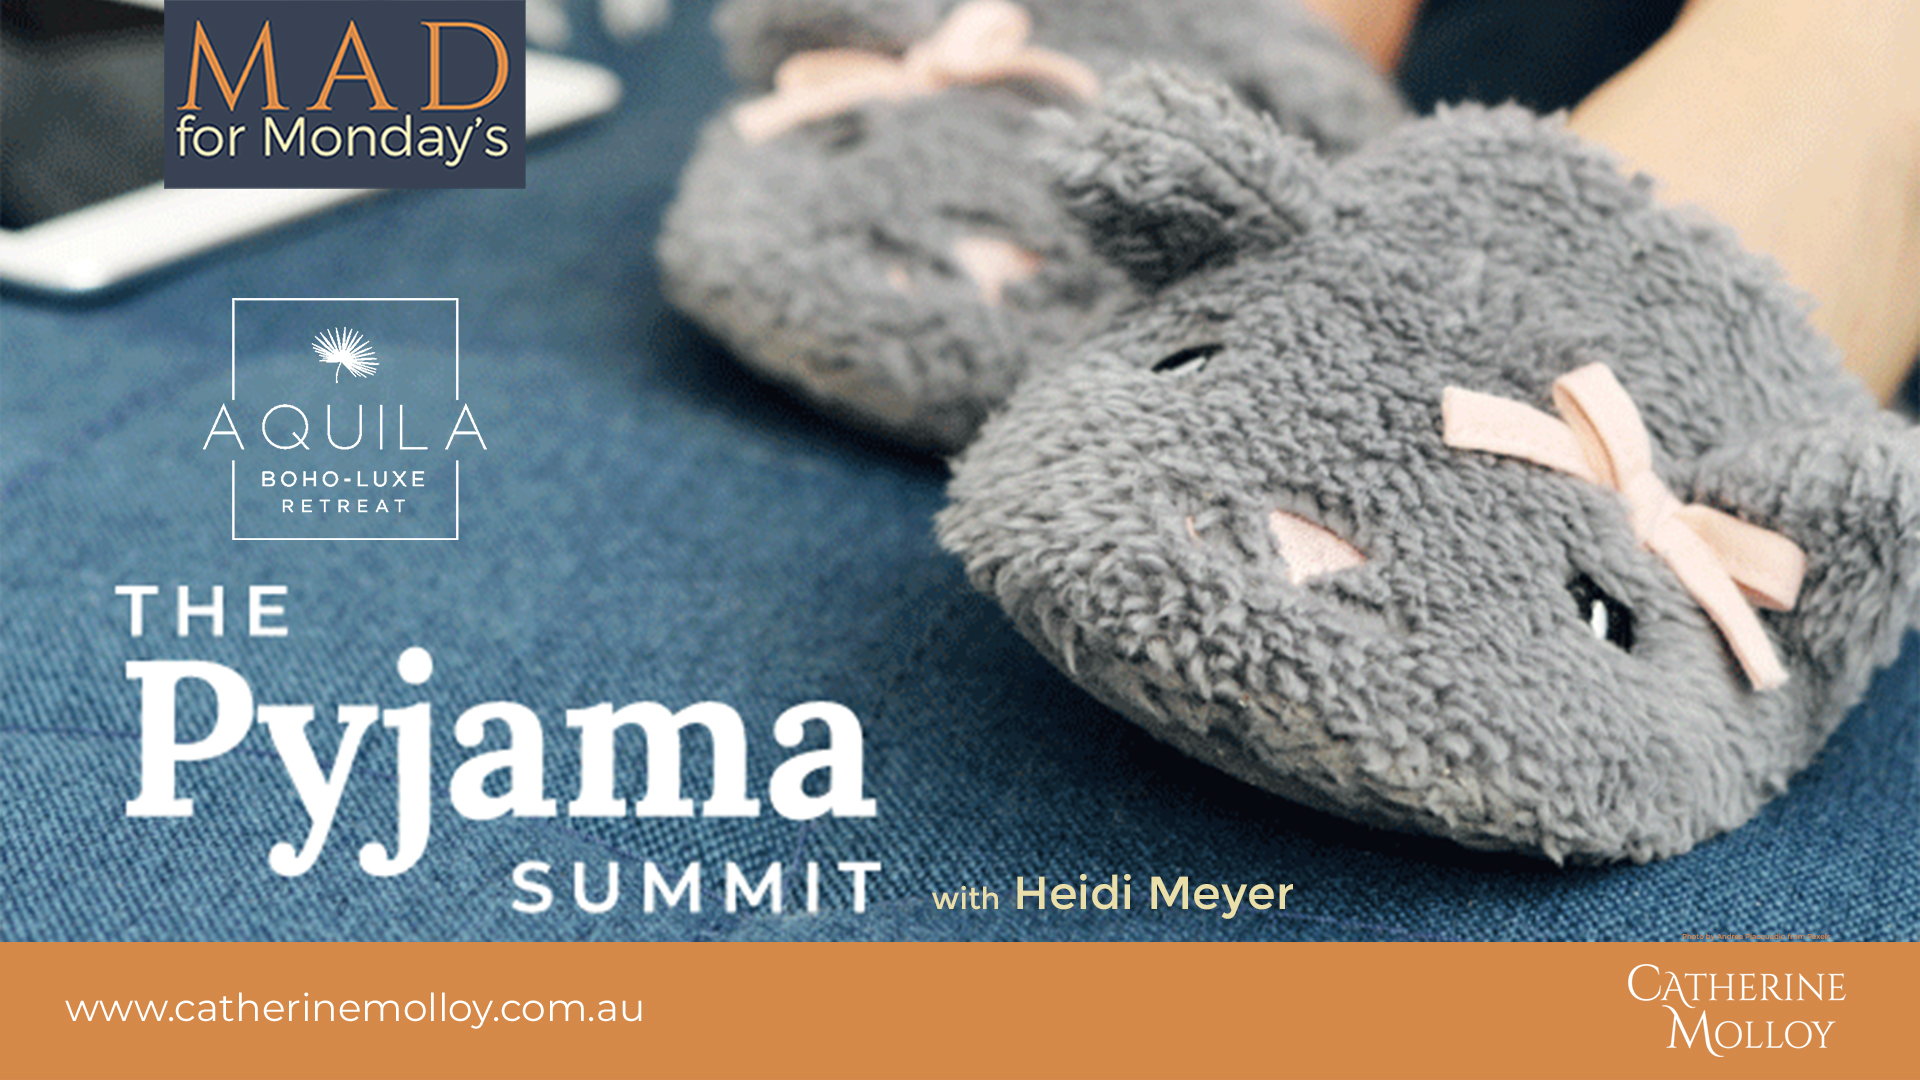 MAD for Monday's – The Pyjama Summit